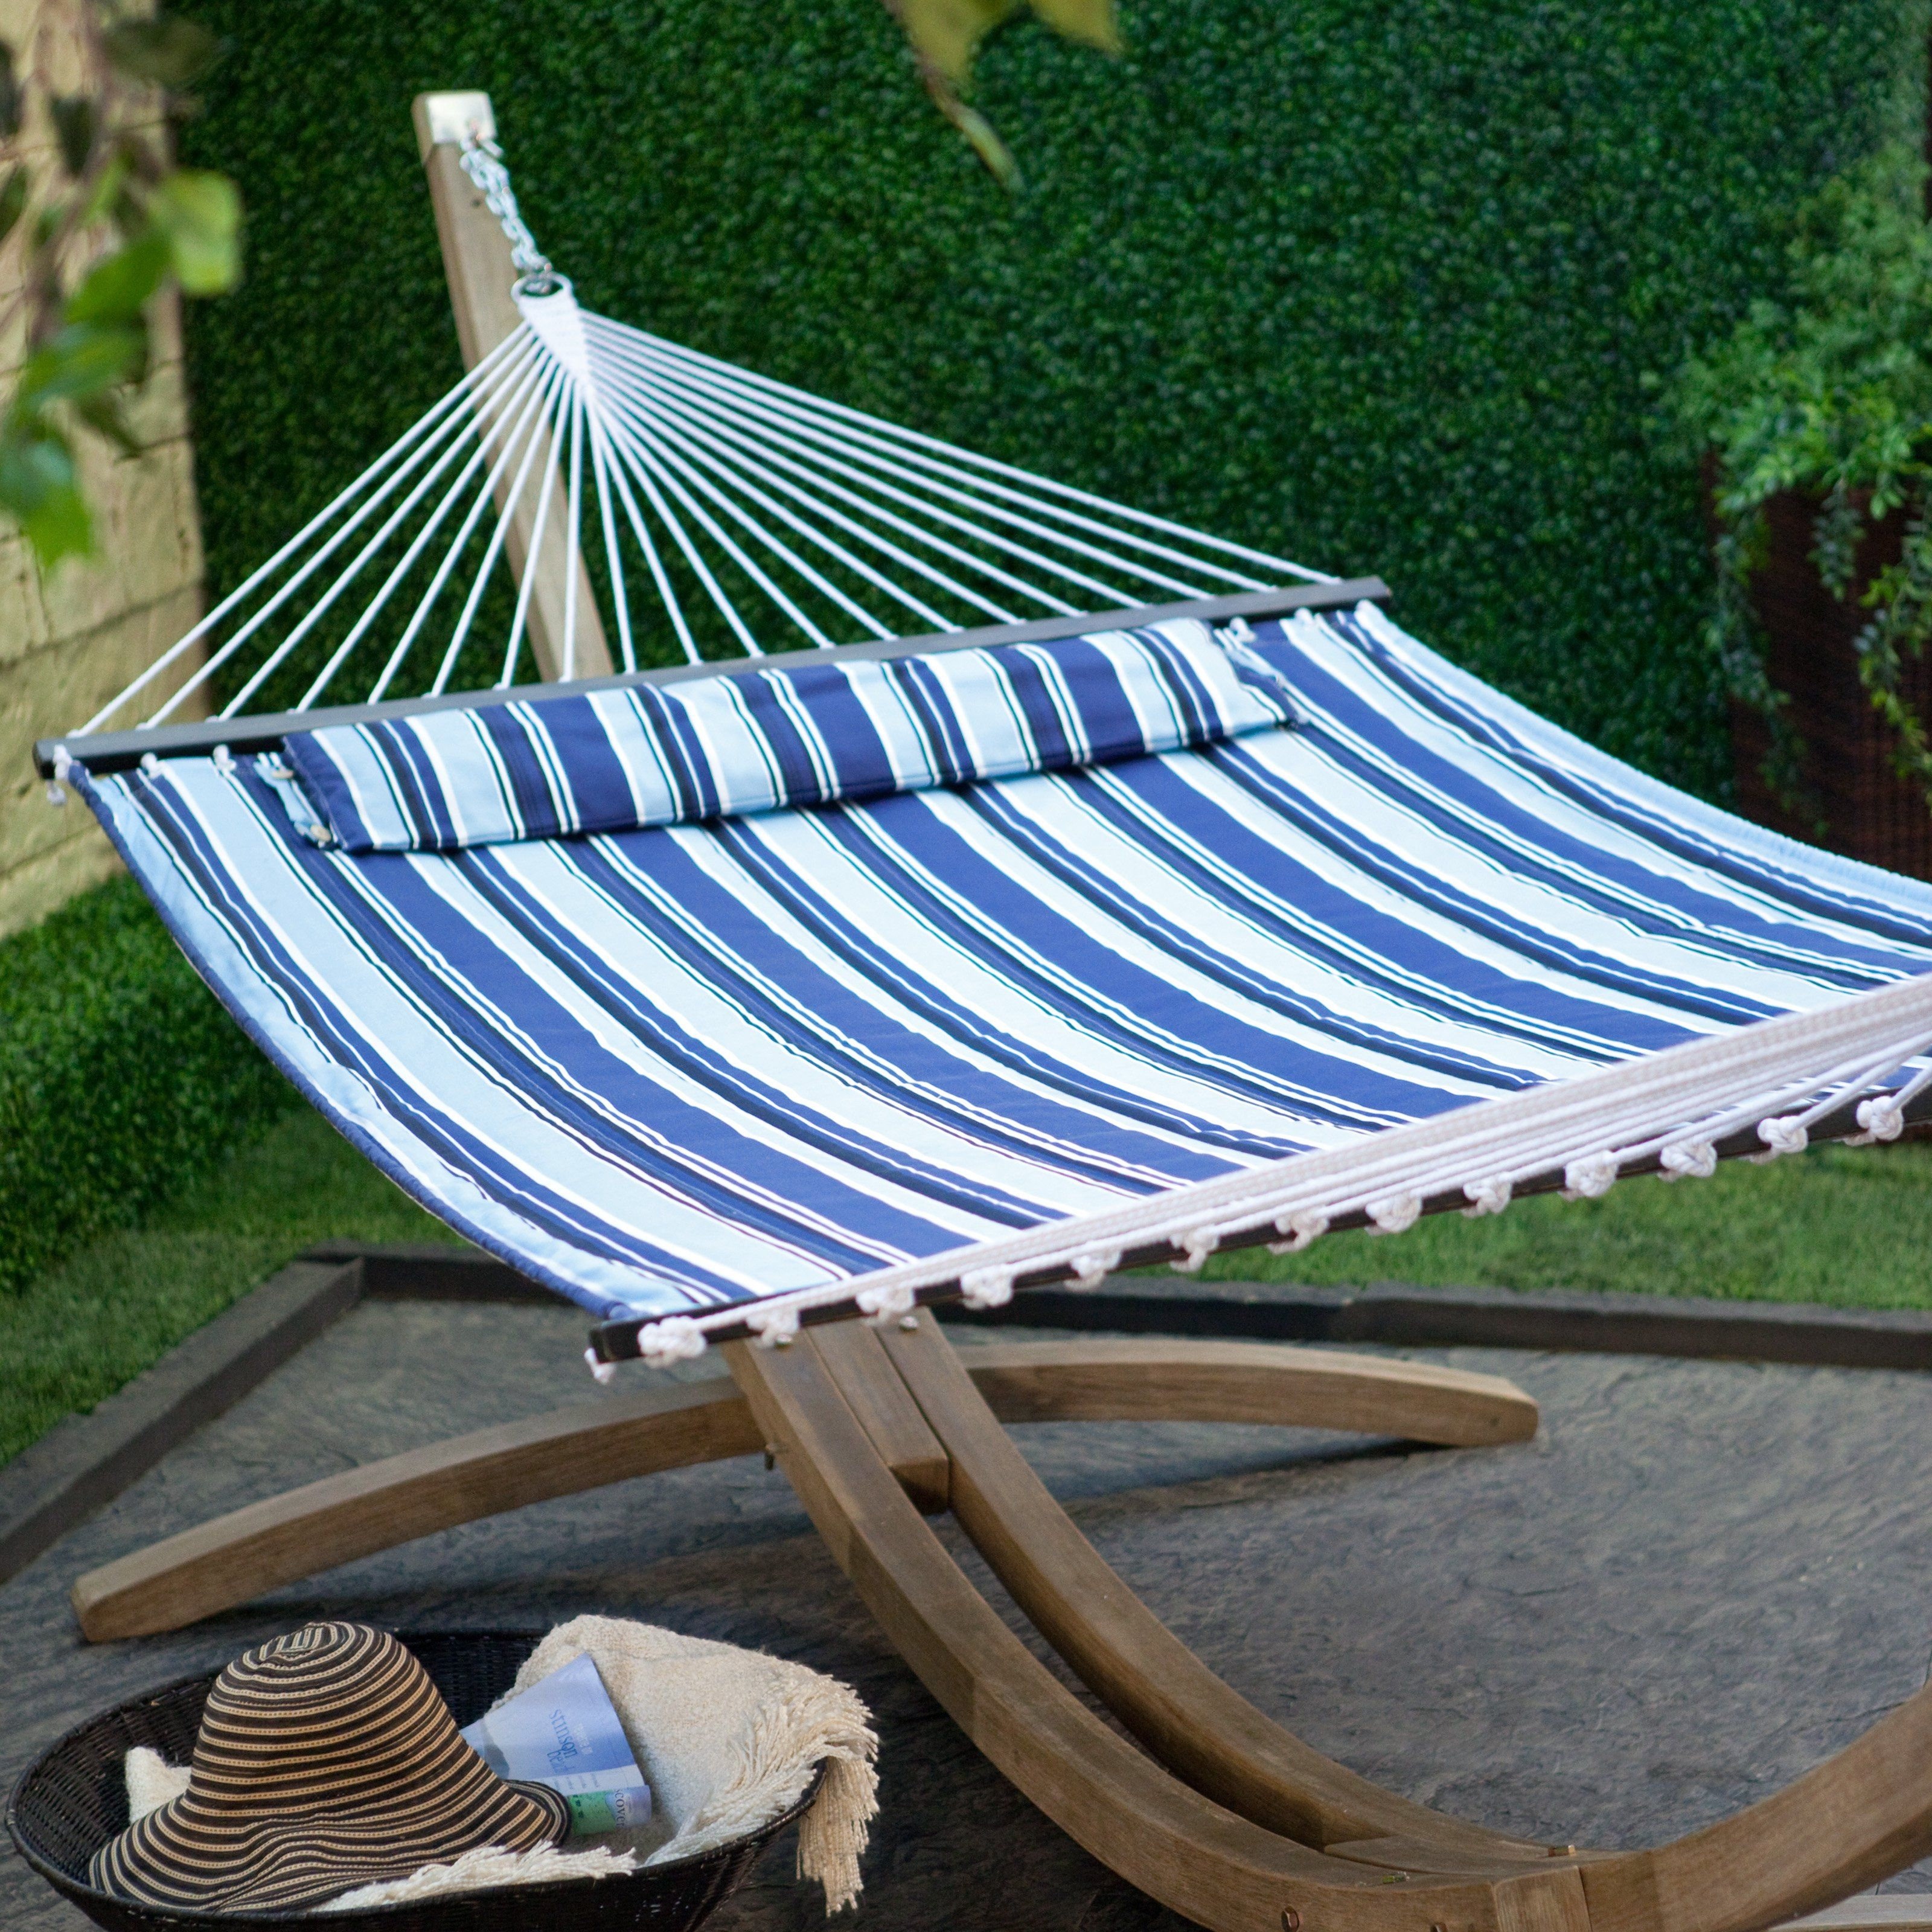 Island bay ft nautical quilted hammock drift away a summer